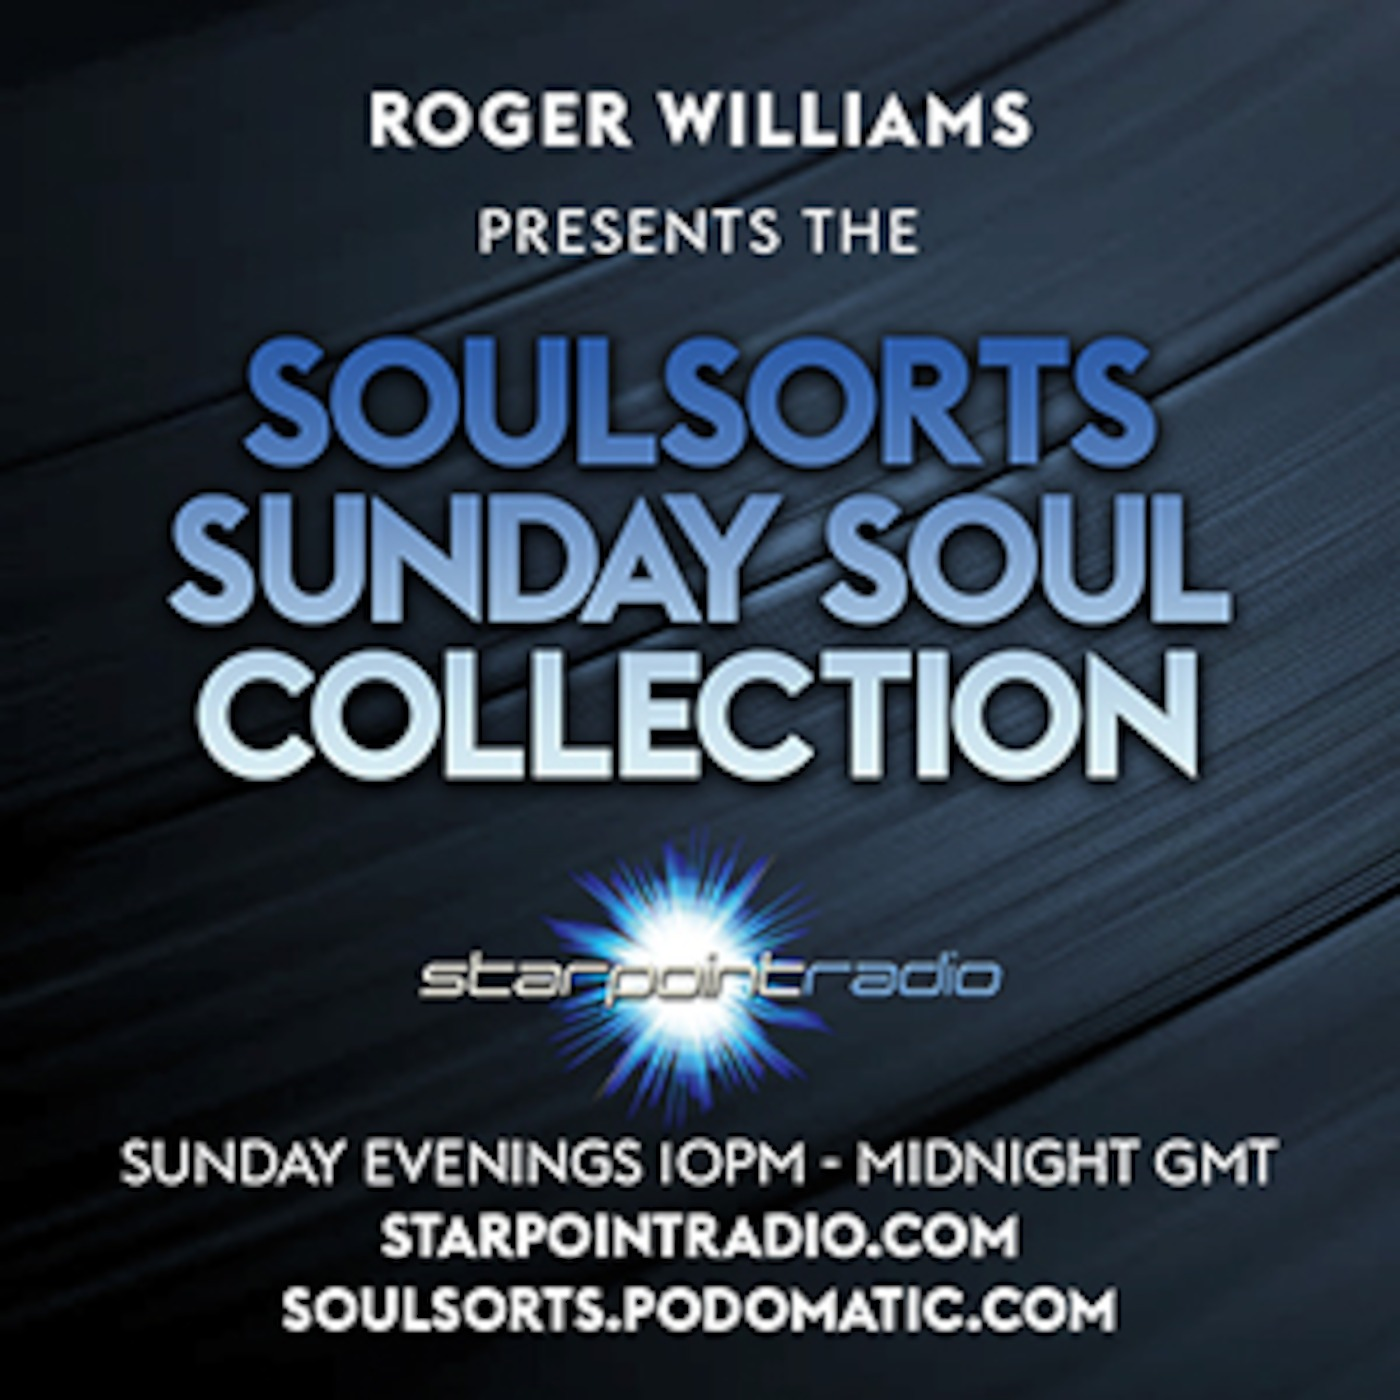 The Soulsorts Sunday Soul Collection On Starpoint Radio Soulsorts